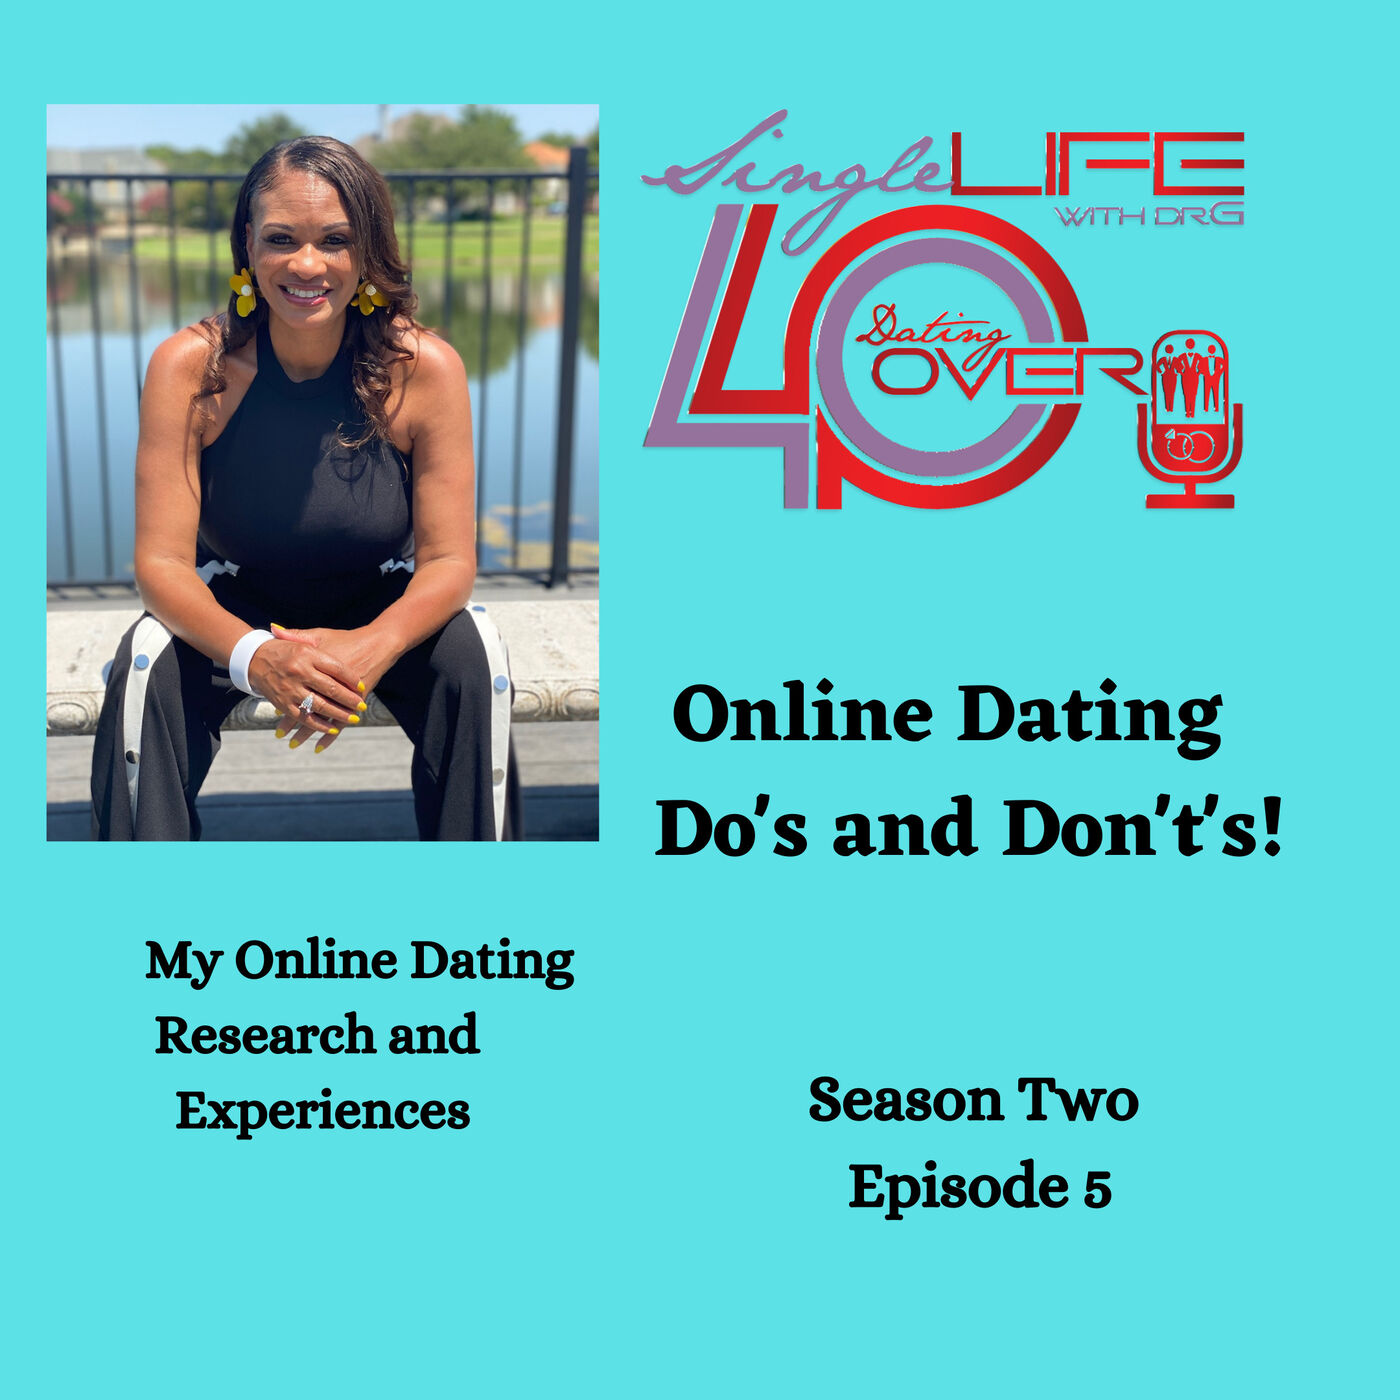 Online Dating Do's and Don't's